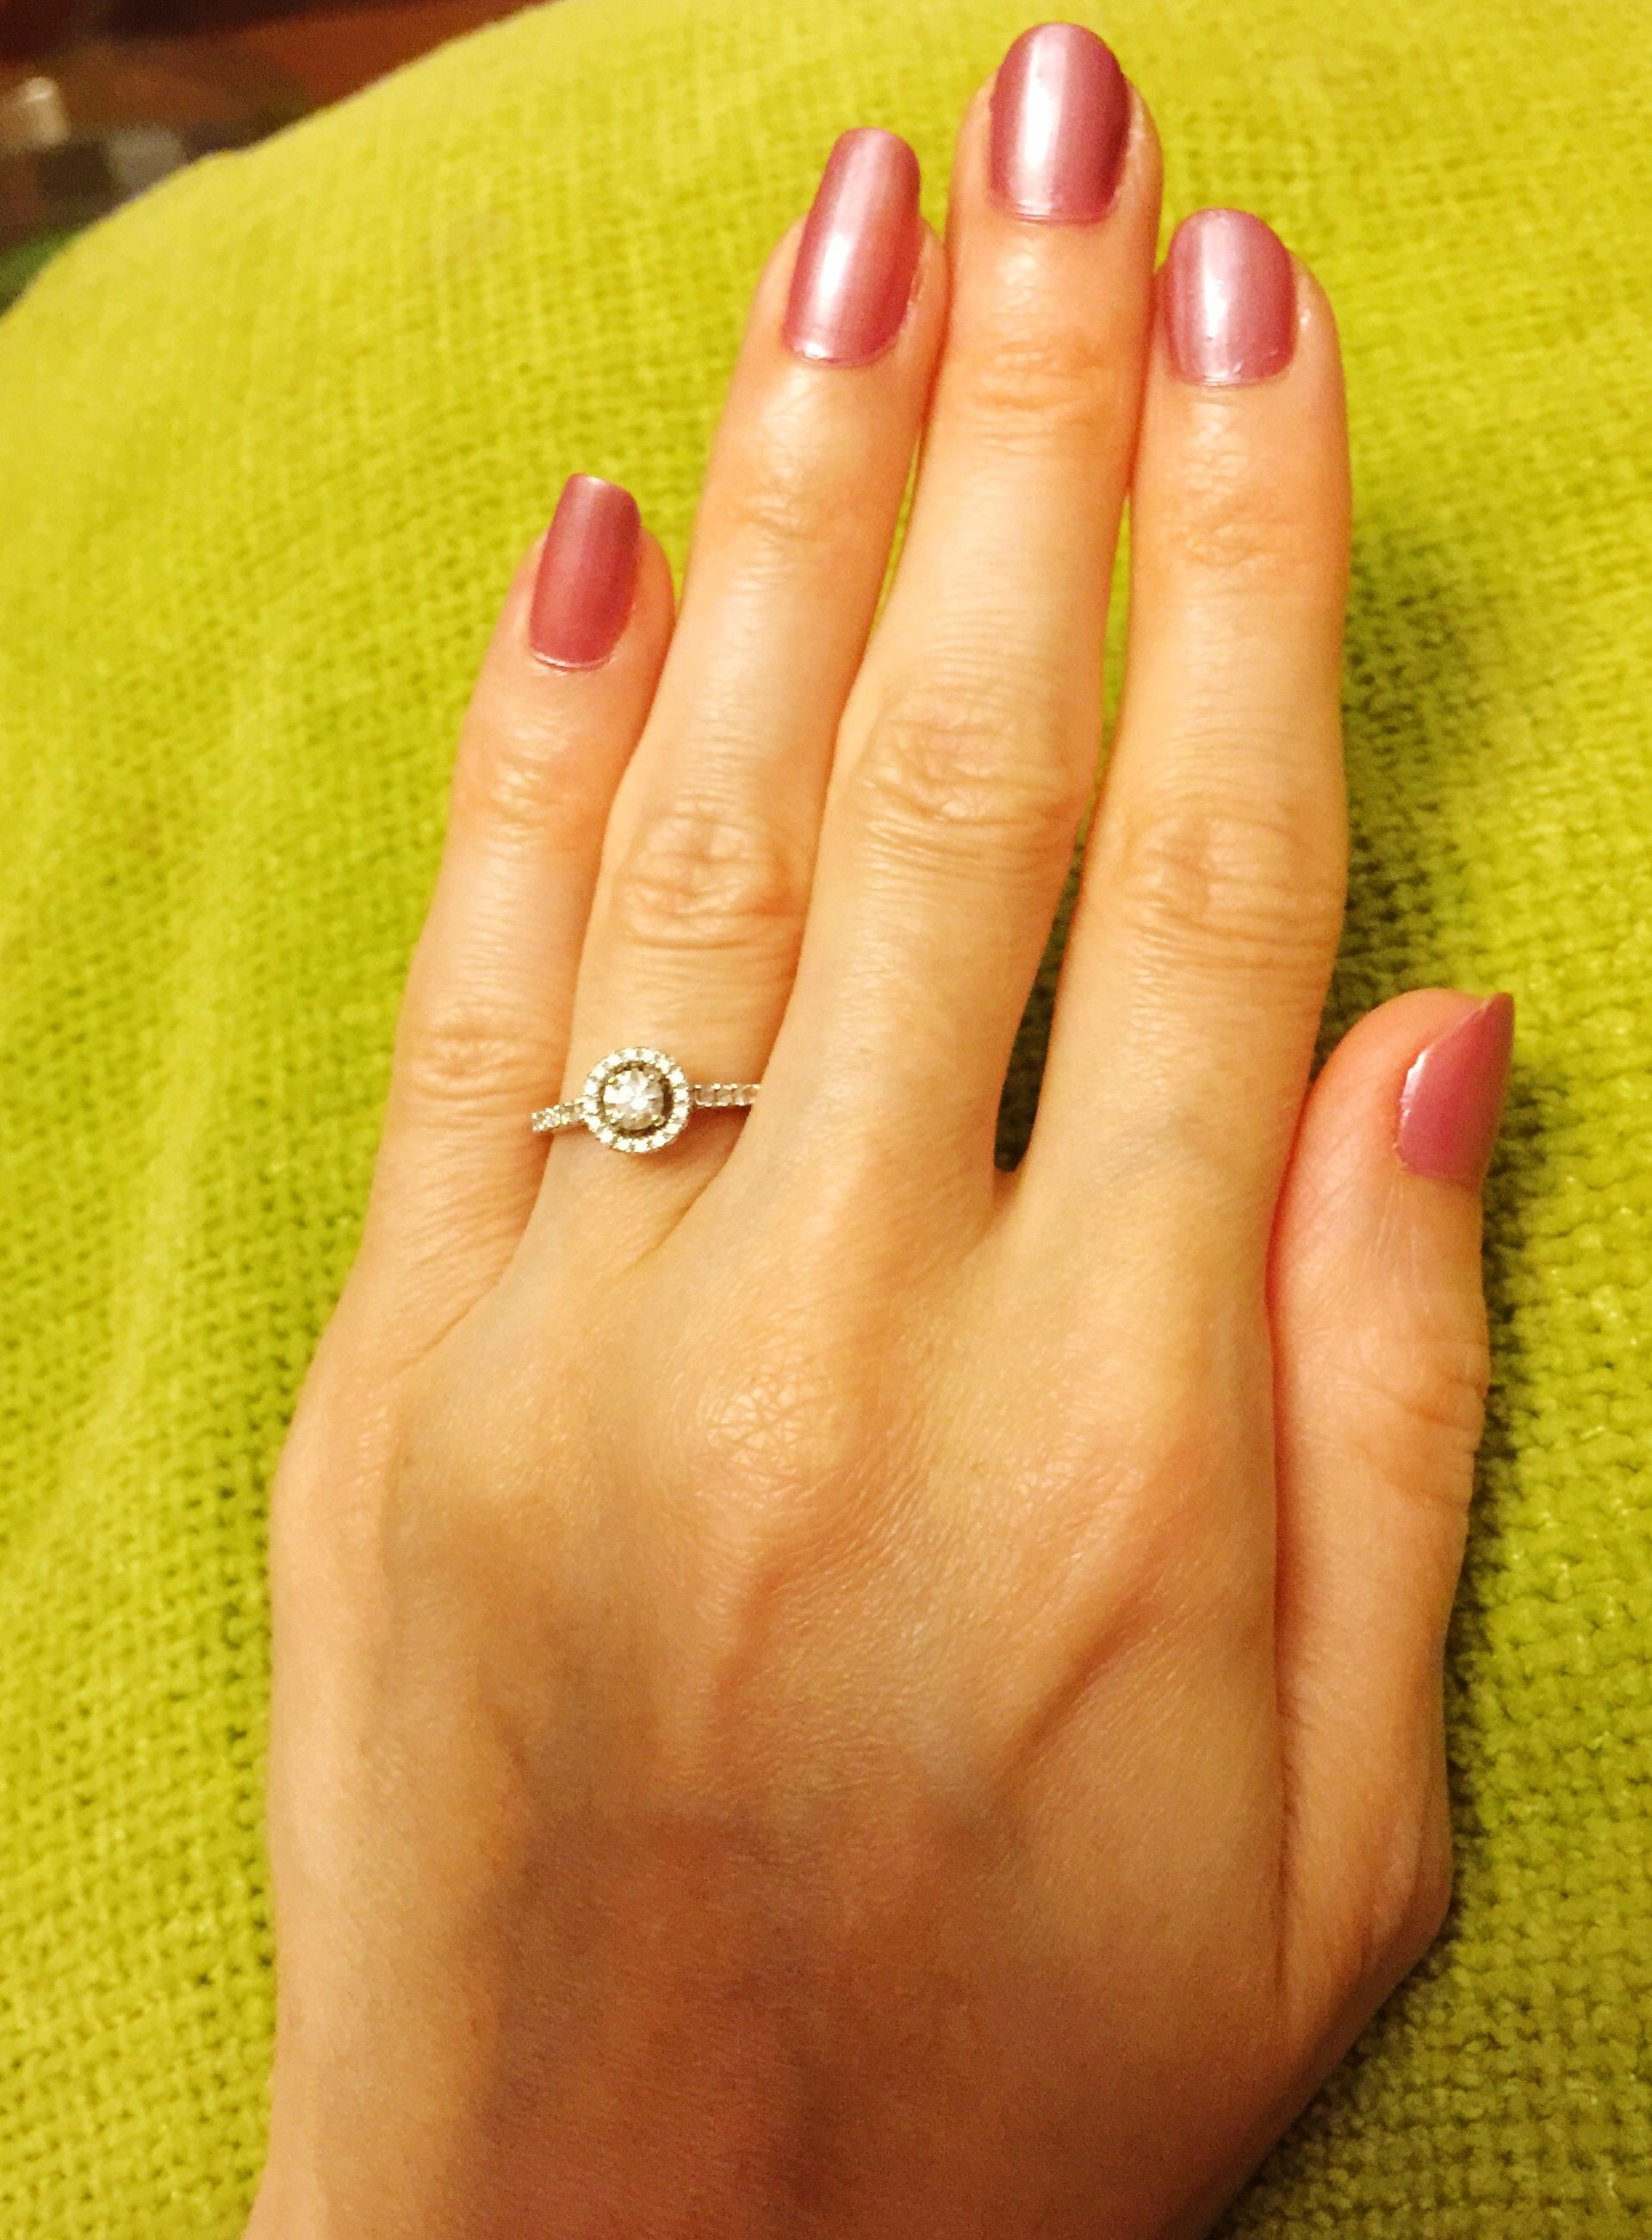 person, part of, human finger, holding, cropped, close-up, indoors, unrecognizable person, palm, nail polish, showing, personal perspective, ring, lifestyles, fingernail, high angle view